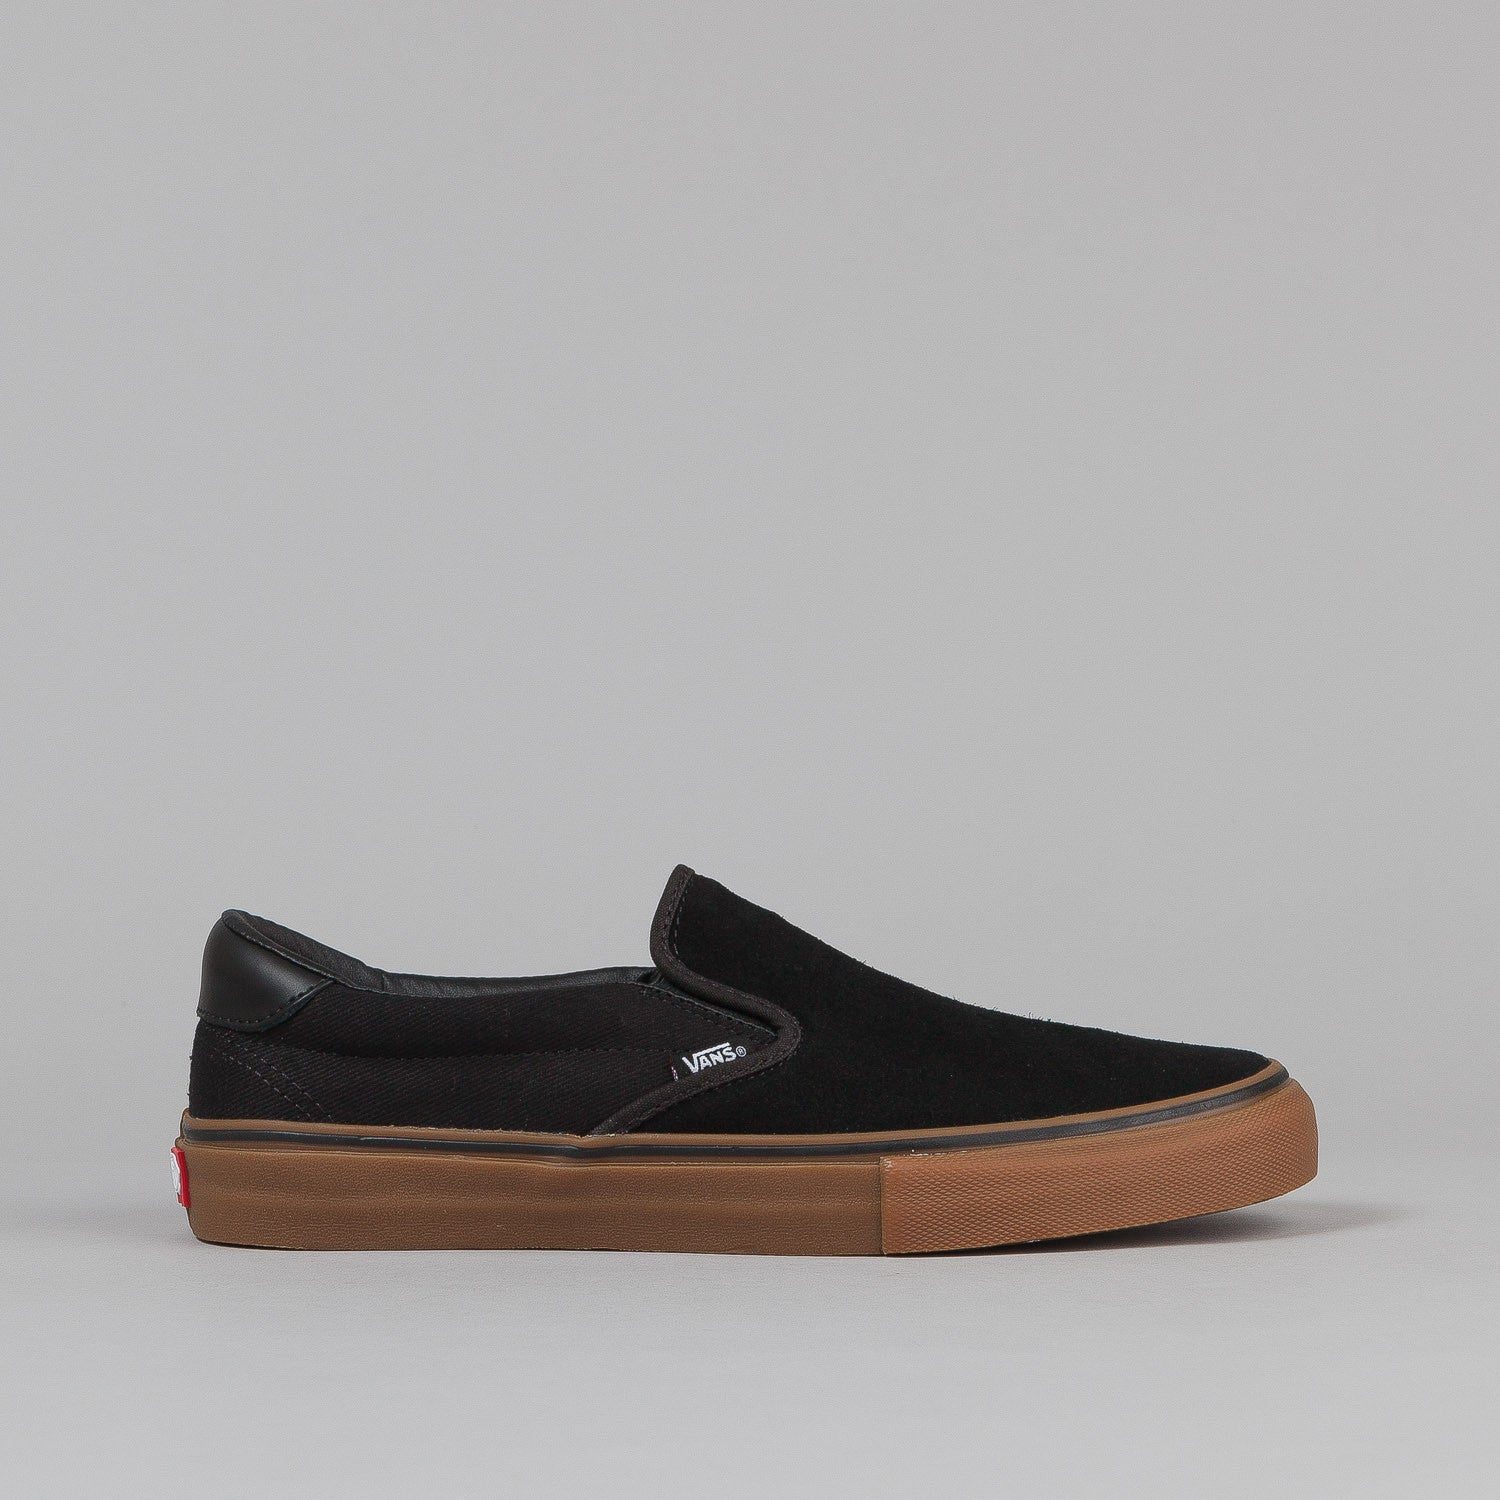 Vans Slip On 59 Pro Shoes